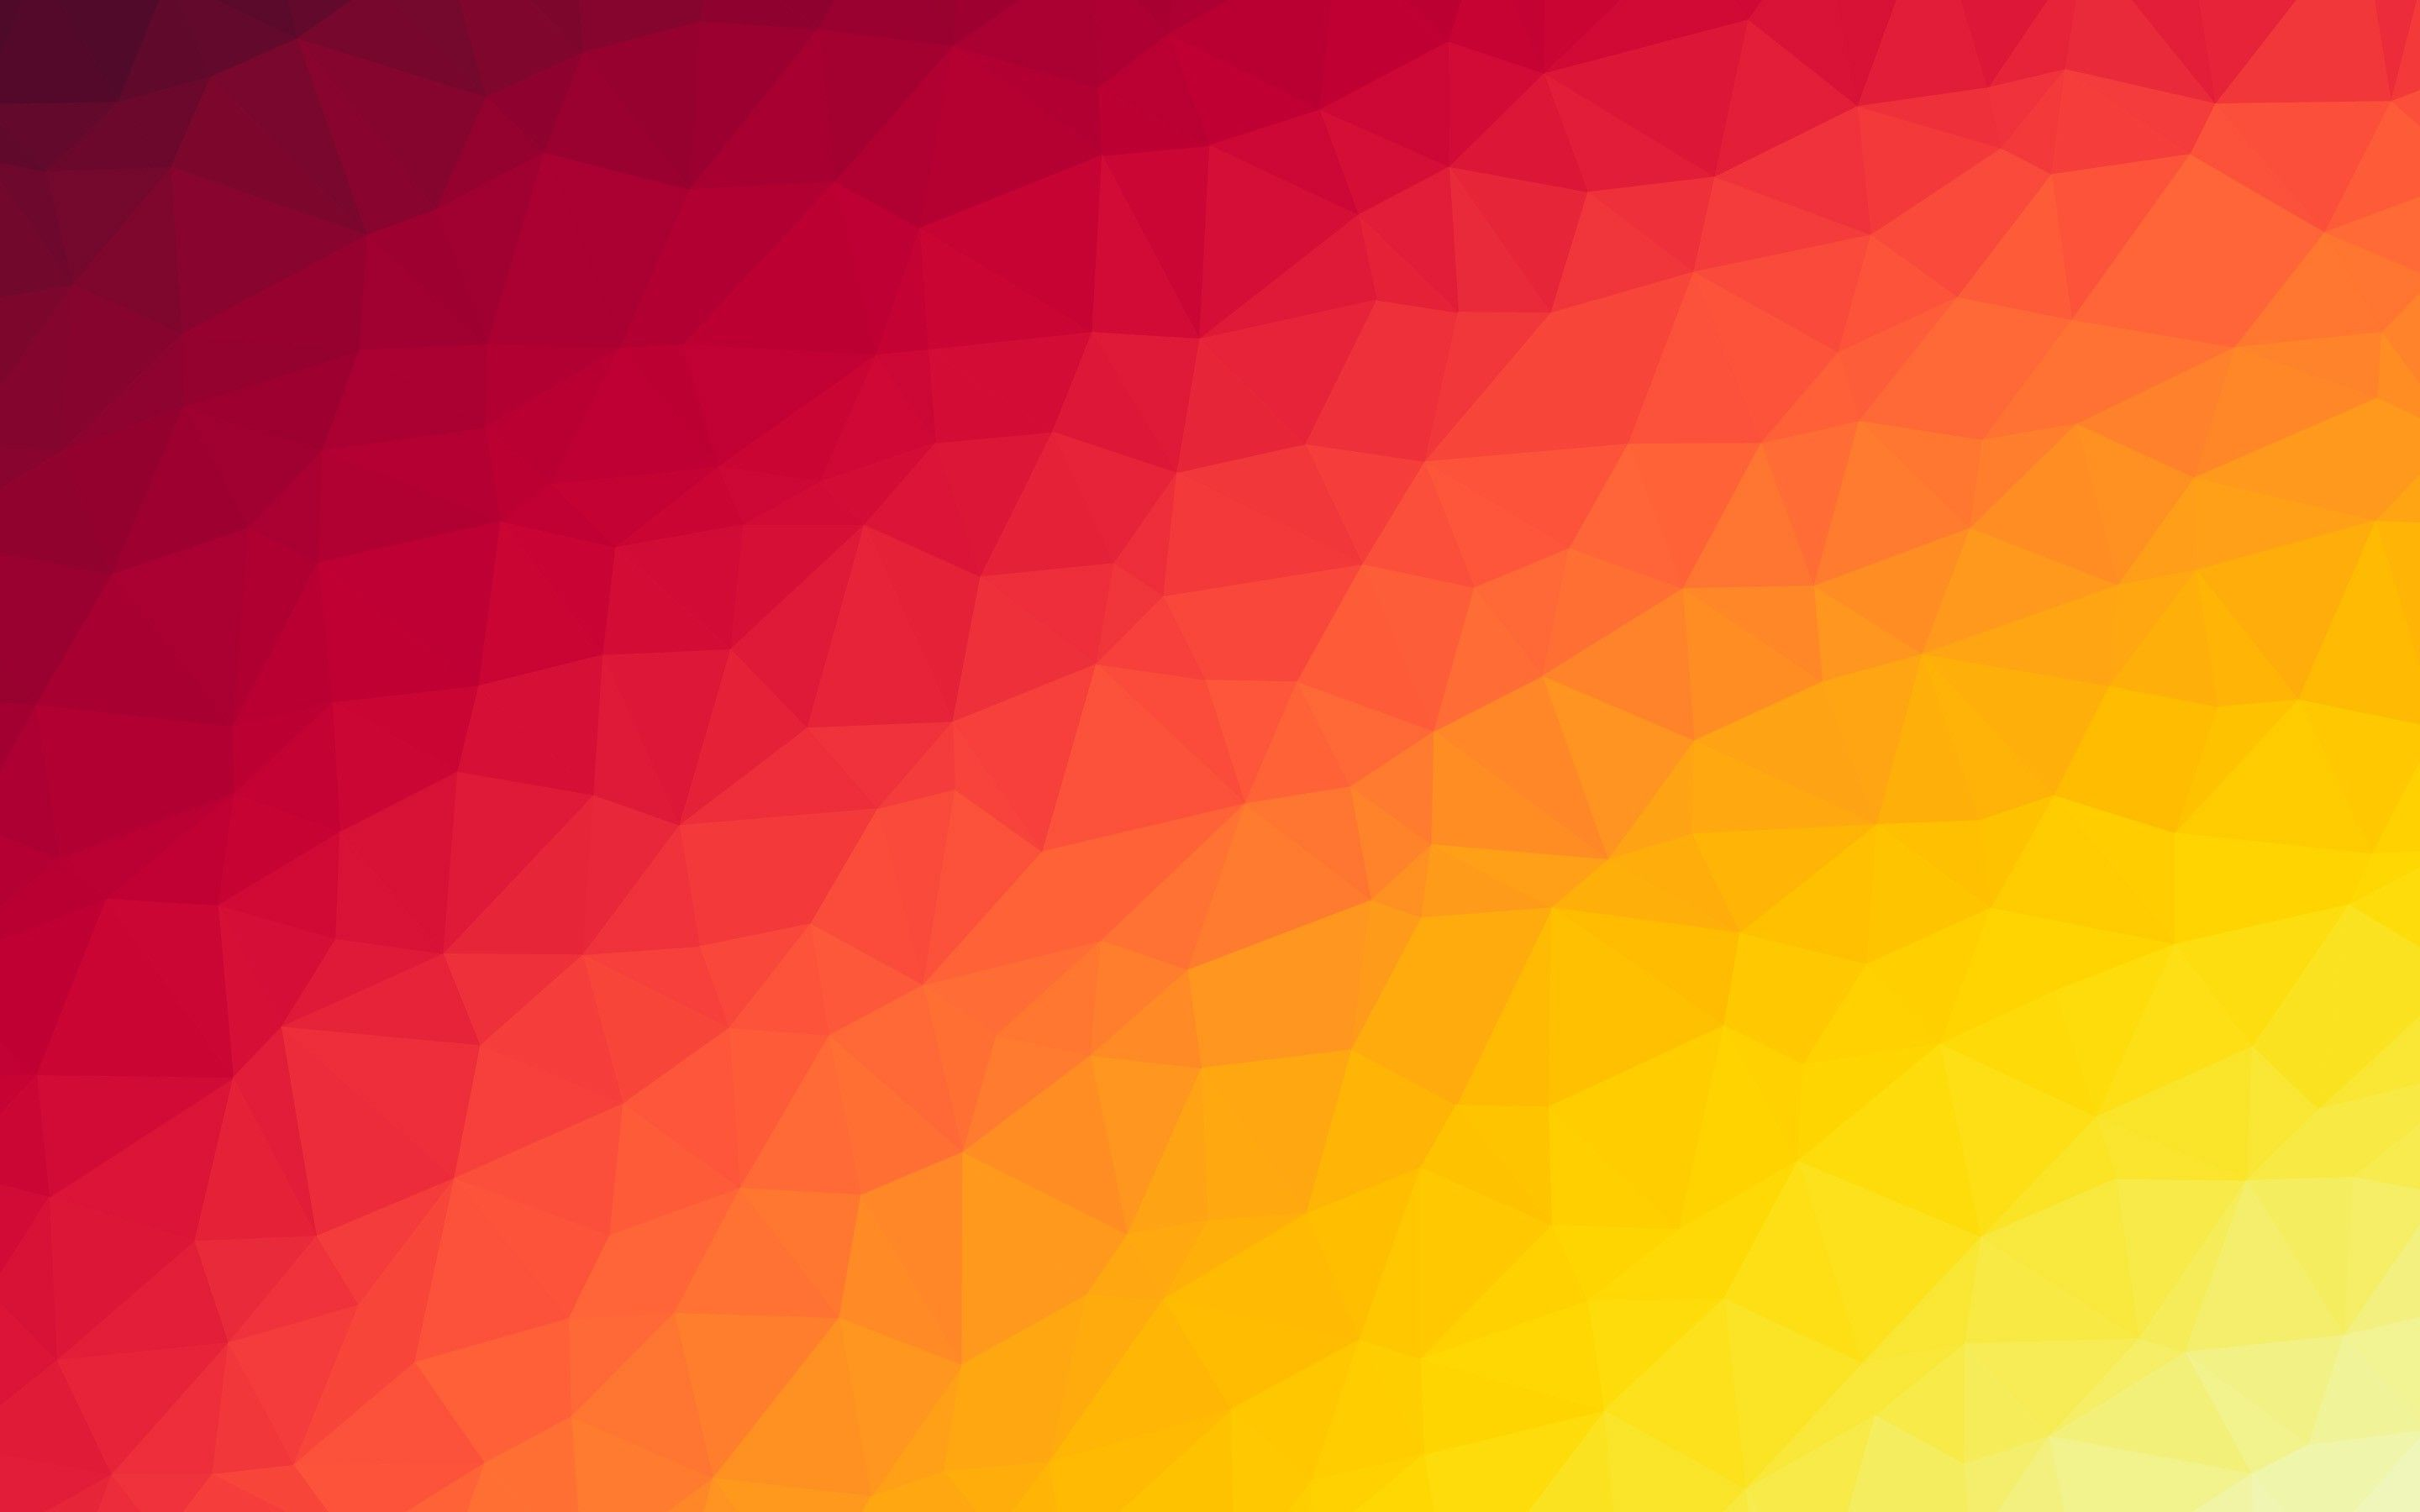 Color Codes Background Download Picture Of A Fantastic Hd Colorful Background